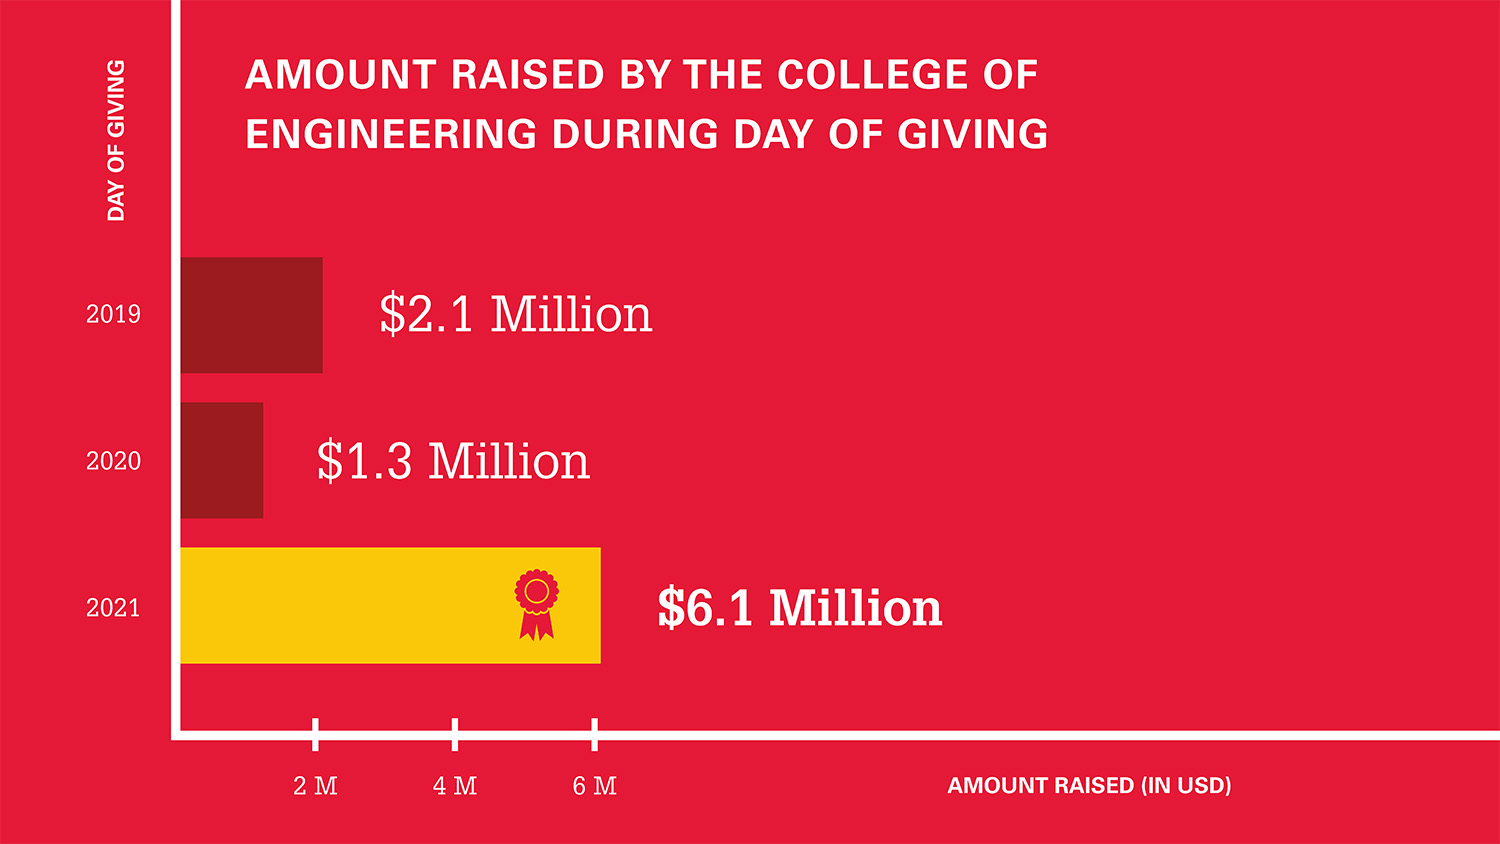 bar graph showing three years' of College of Engineering Day of Giving results